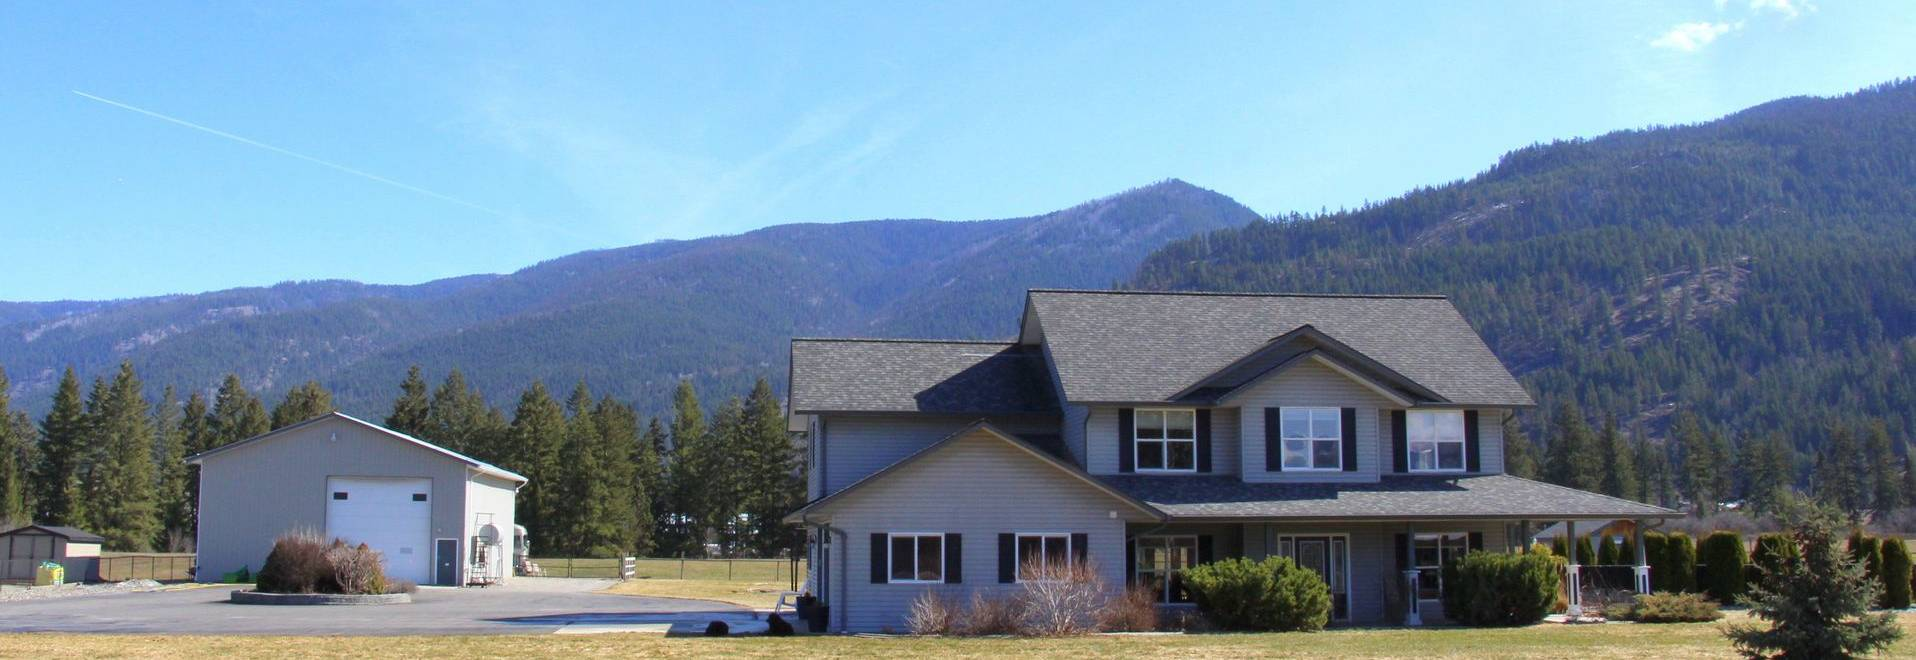 1910 Rosedale Avenue E, Armstrong, BC